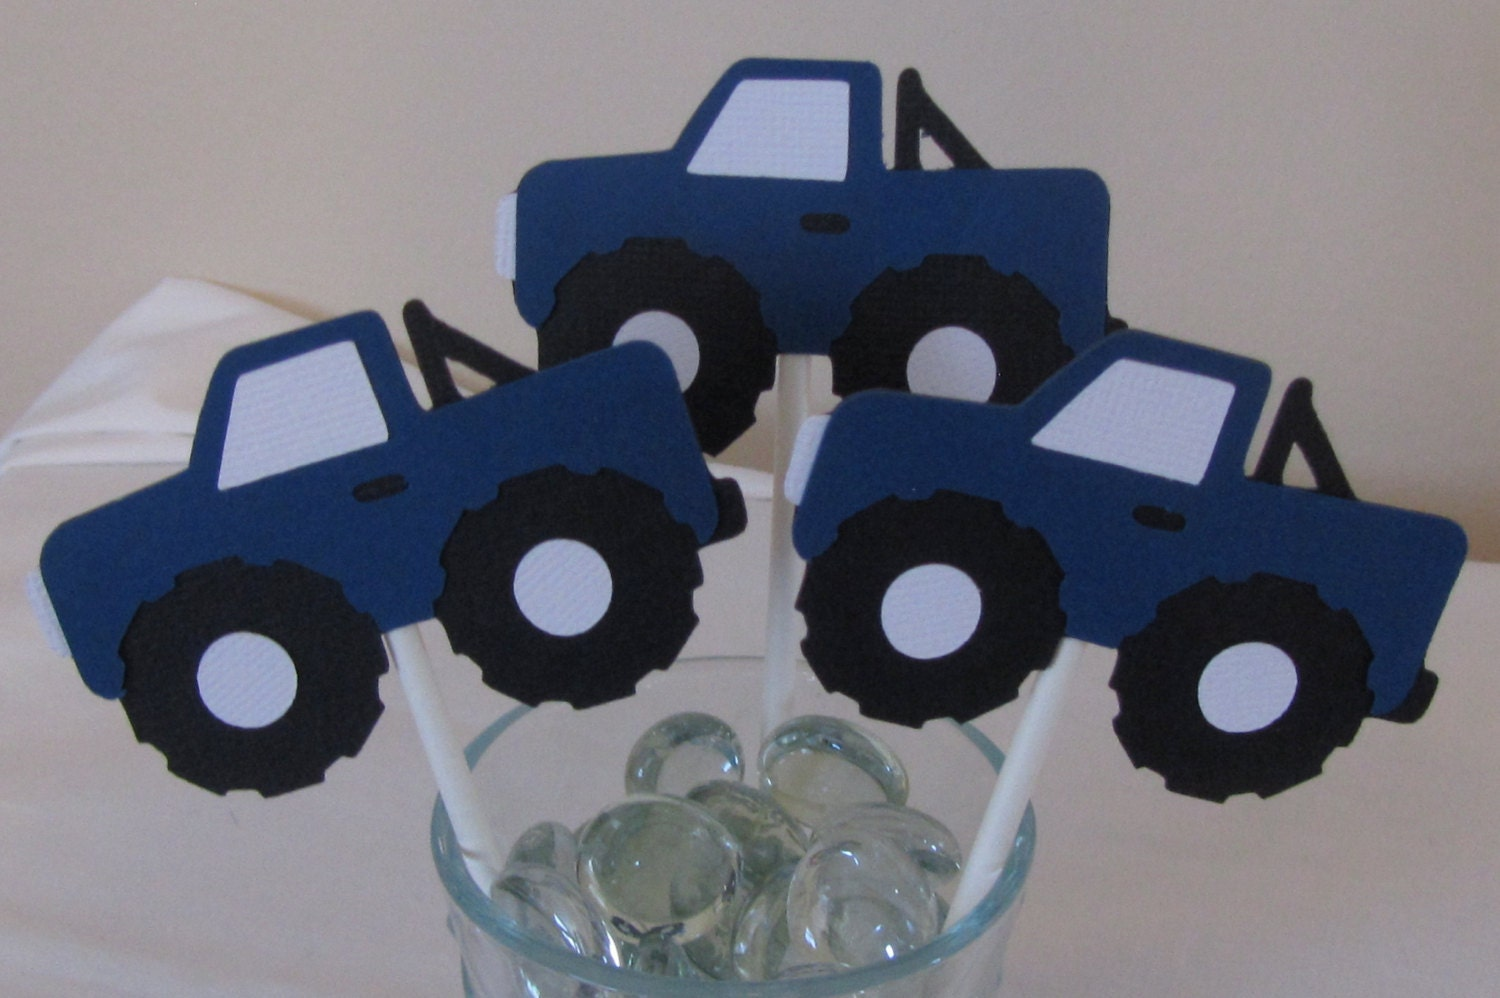 12 Blue Monster Truck Cupcake Toppers by scraptags on Etsy